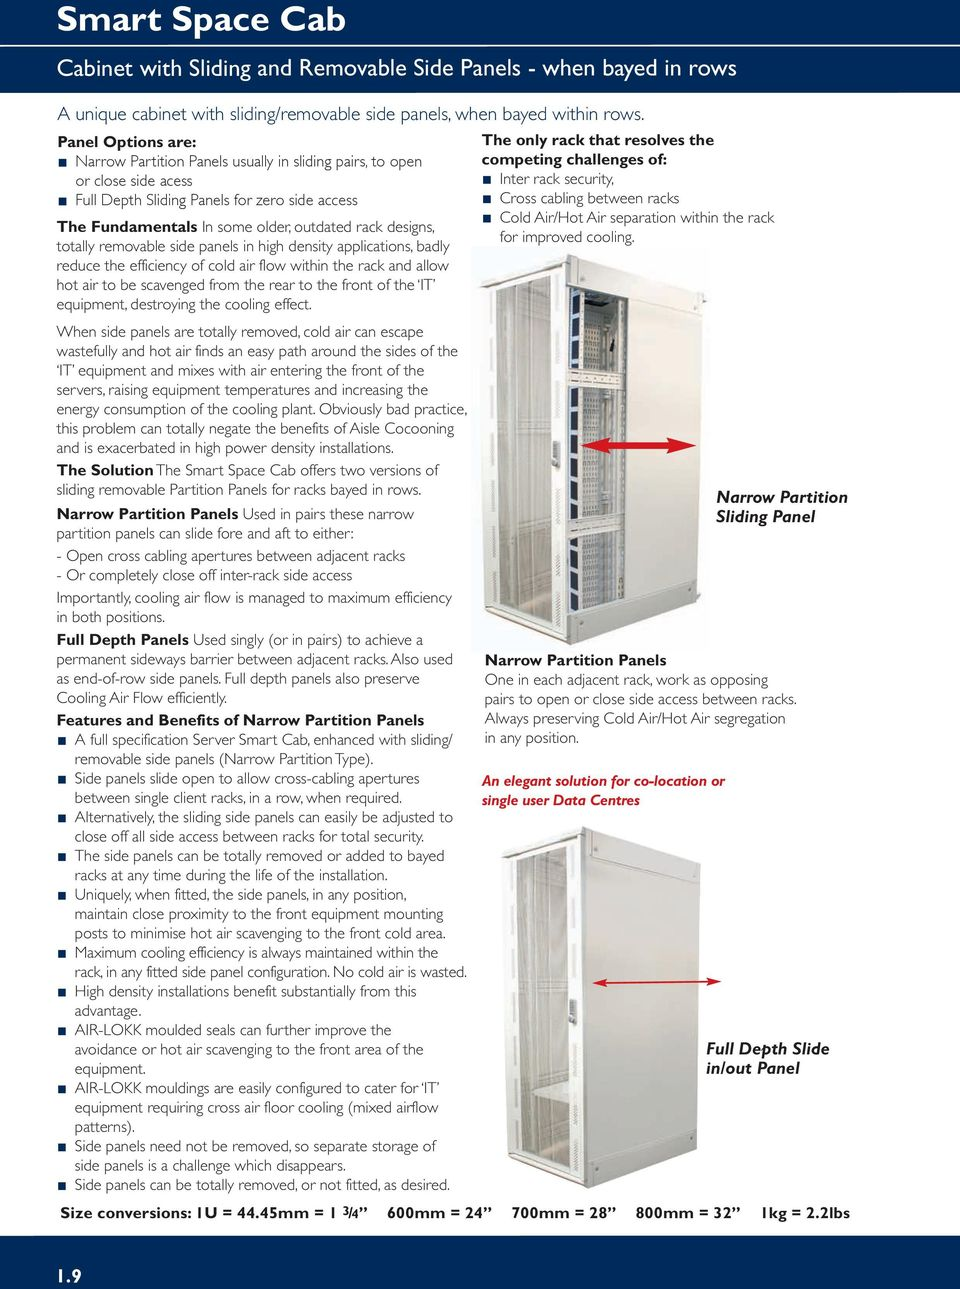 totally removable side panels in high density applications, badly reduce the efficiency of cold air flow within the rack and allow hot air to be scavenged from the rear to the front of the IT